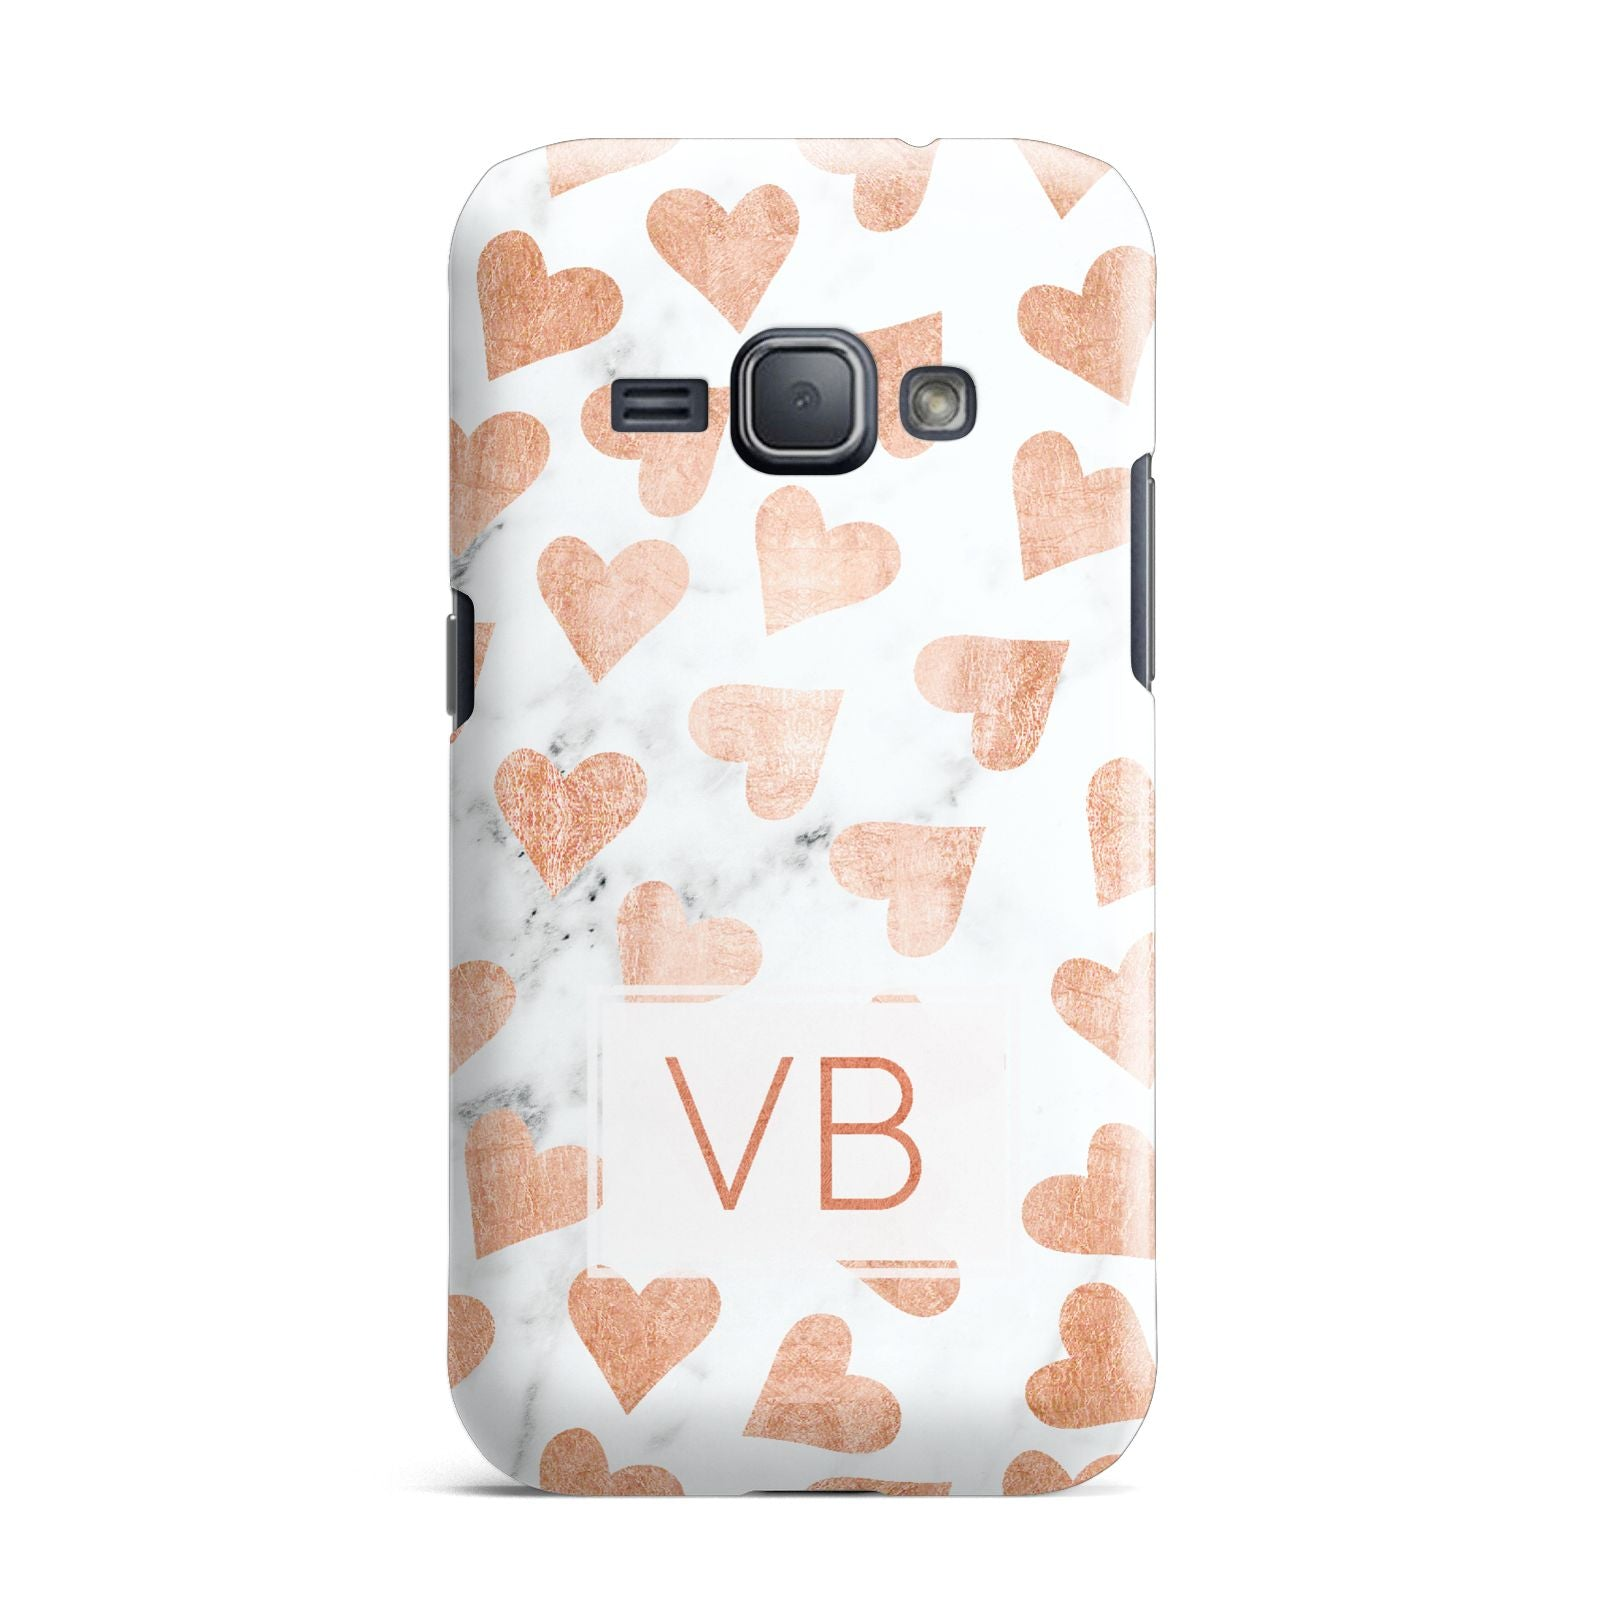 Personalised Heart Initialled Marble Samsung Galaxy J1 2016 Case